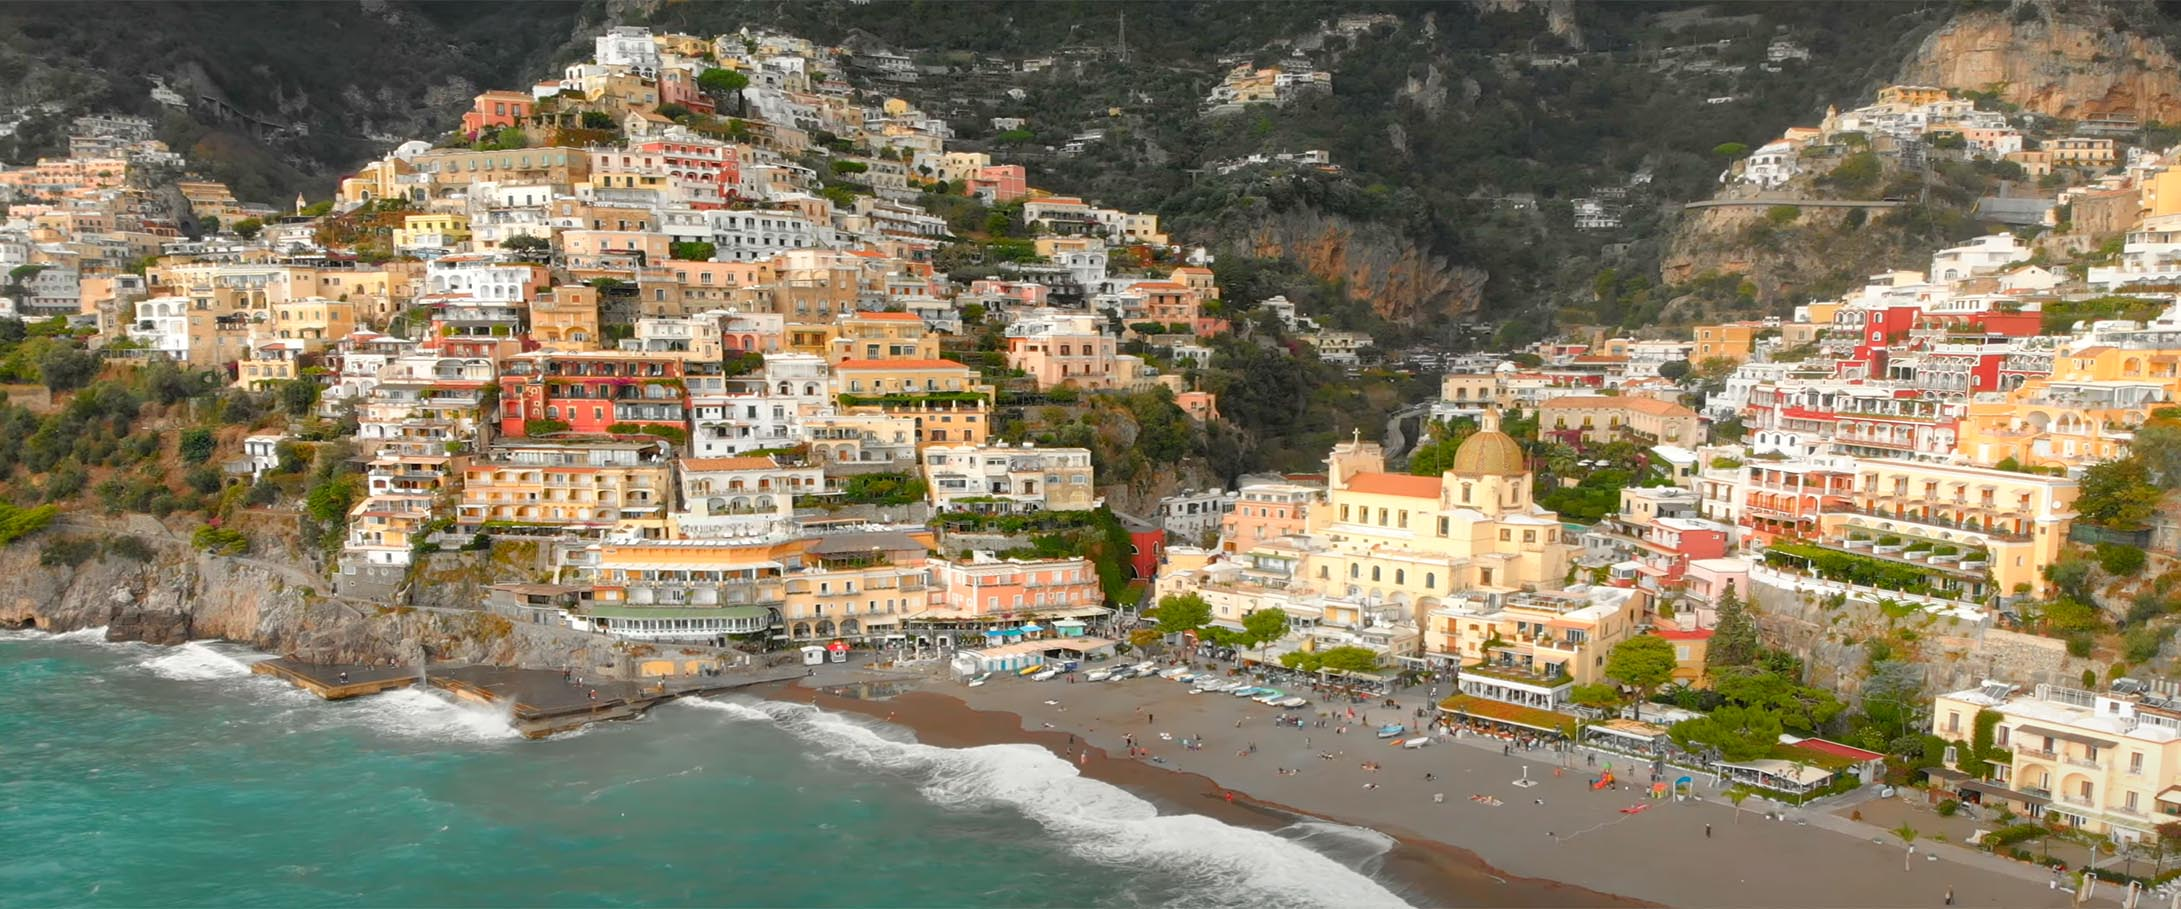 wedding-videographer-amalfi-coast